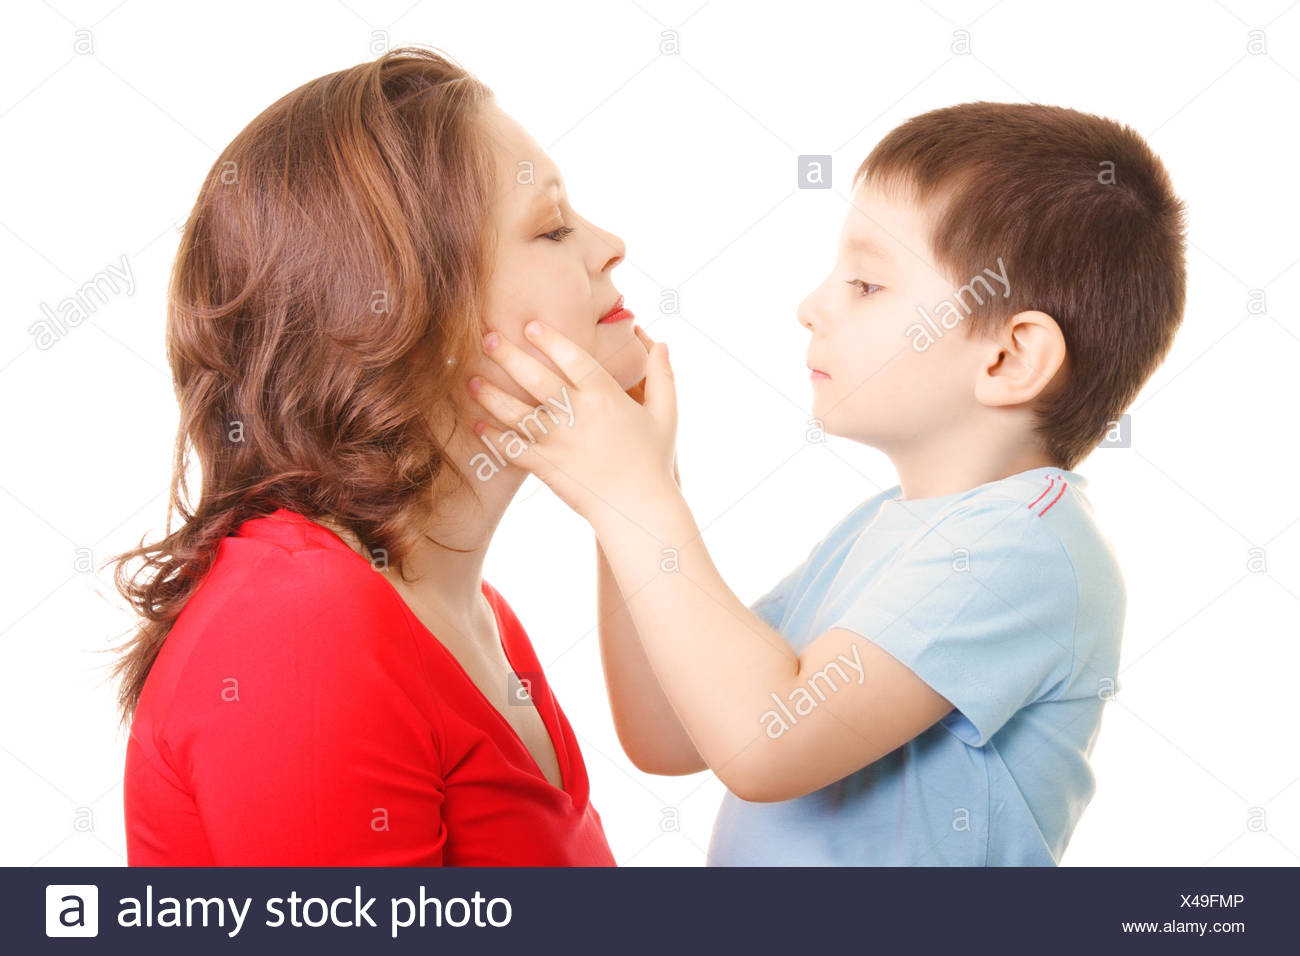 Son and mommy - Stock Image